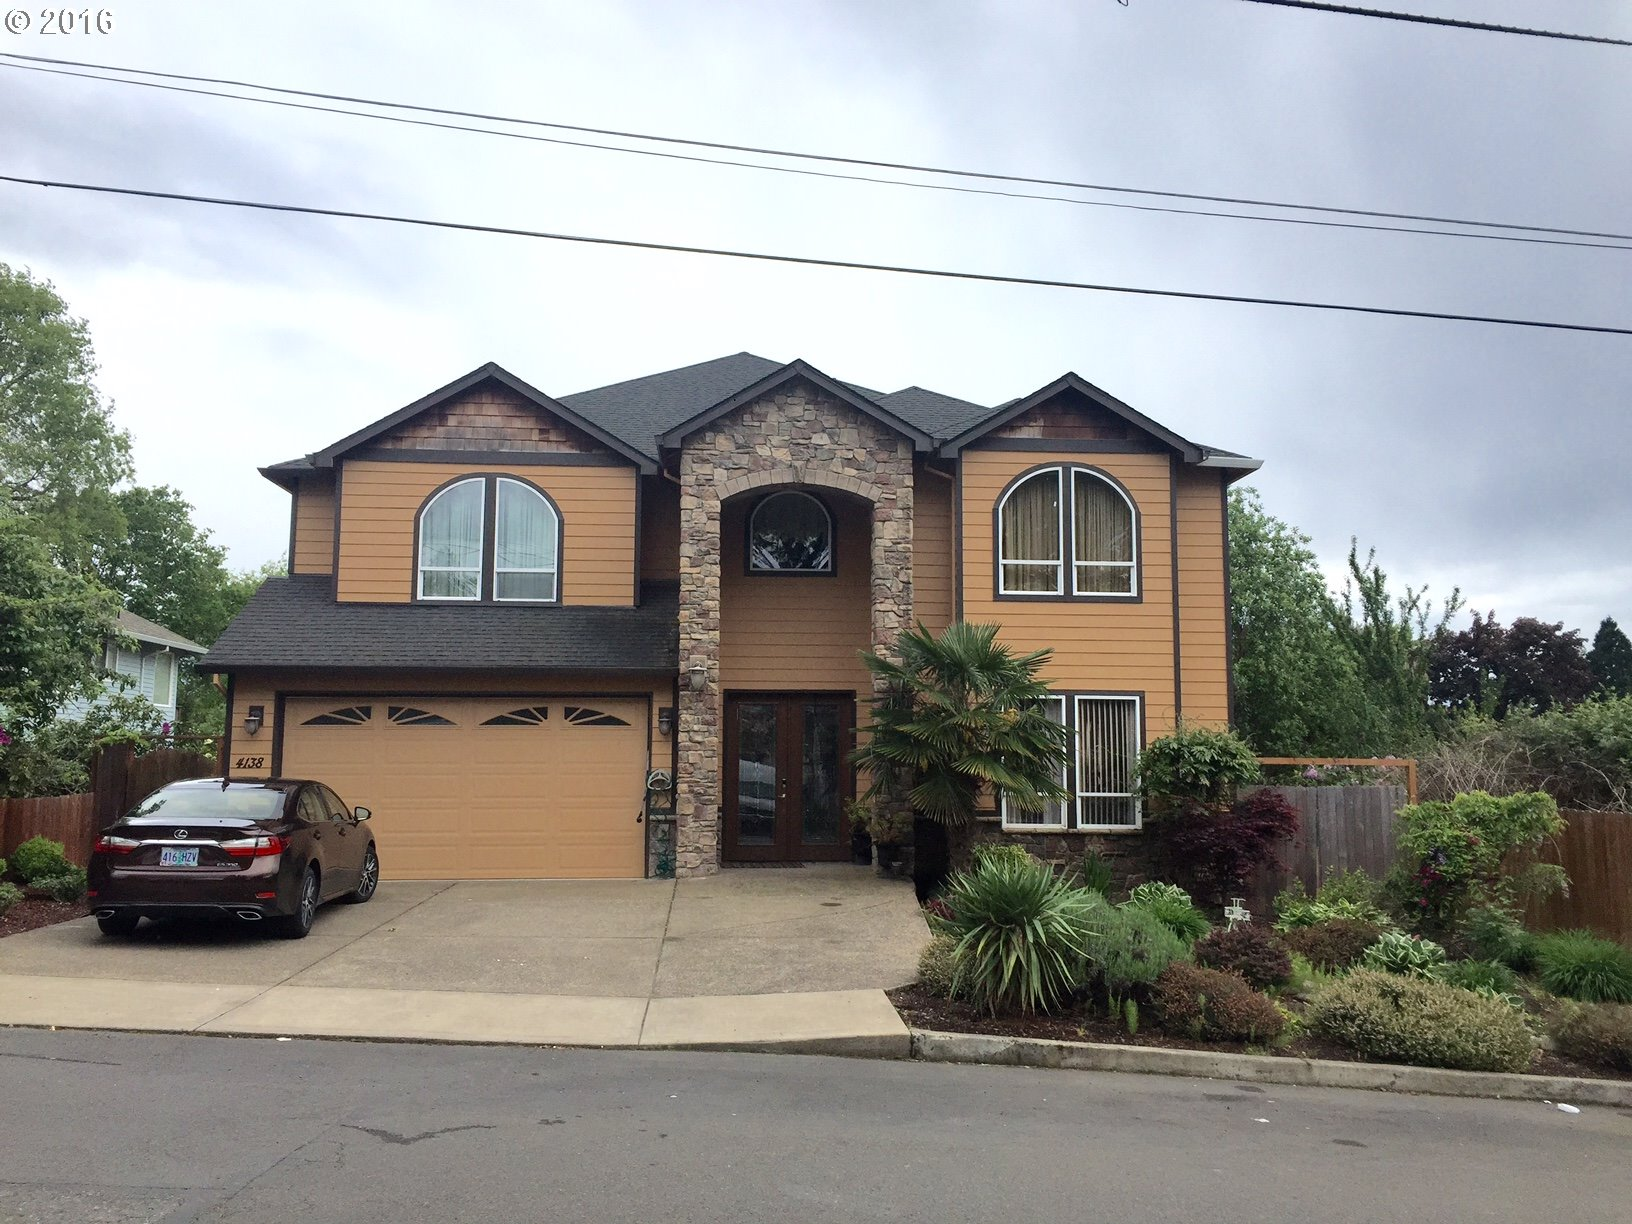 4138 SE CONCORD RD, Milwaukie, OR 97267